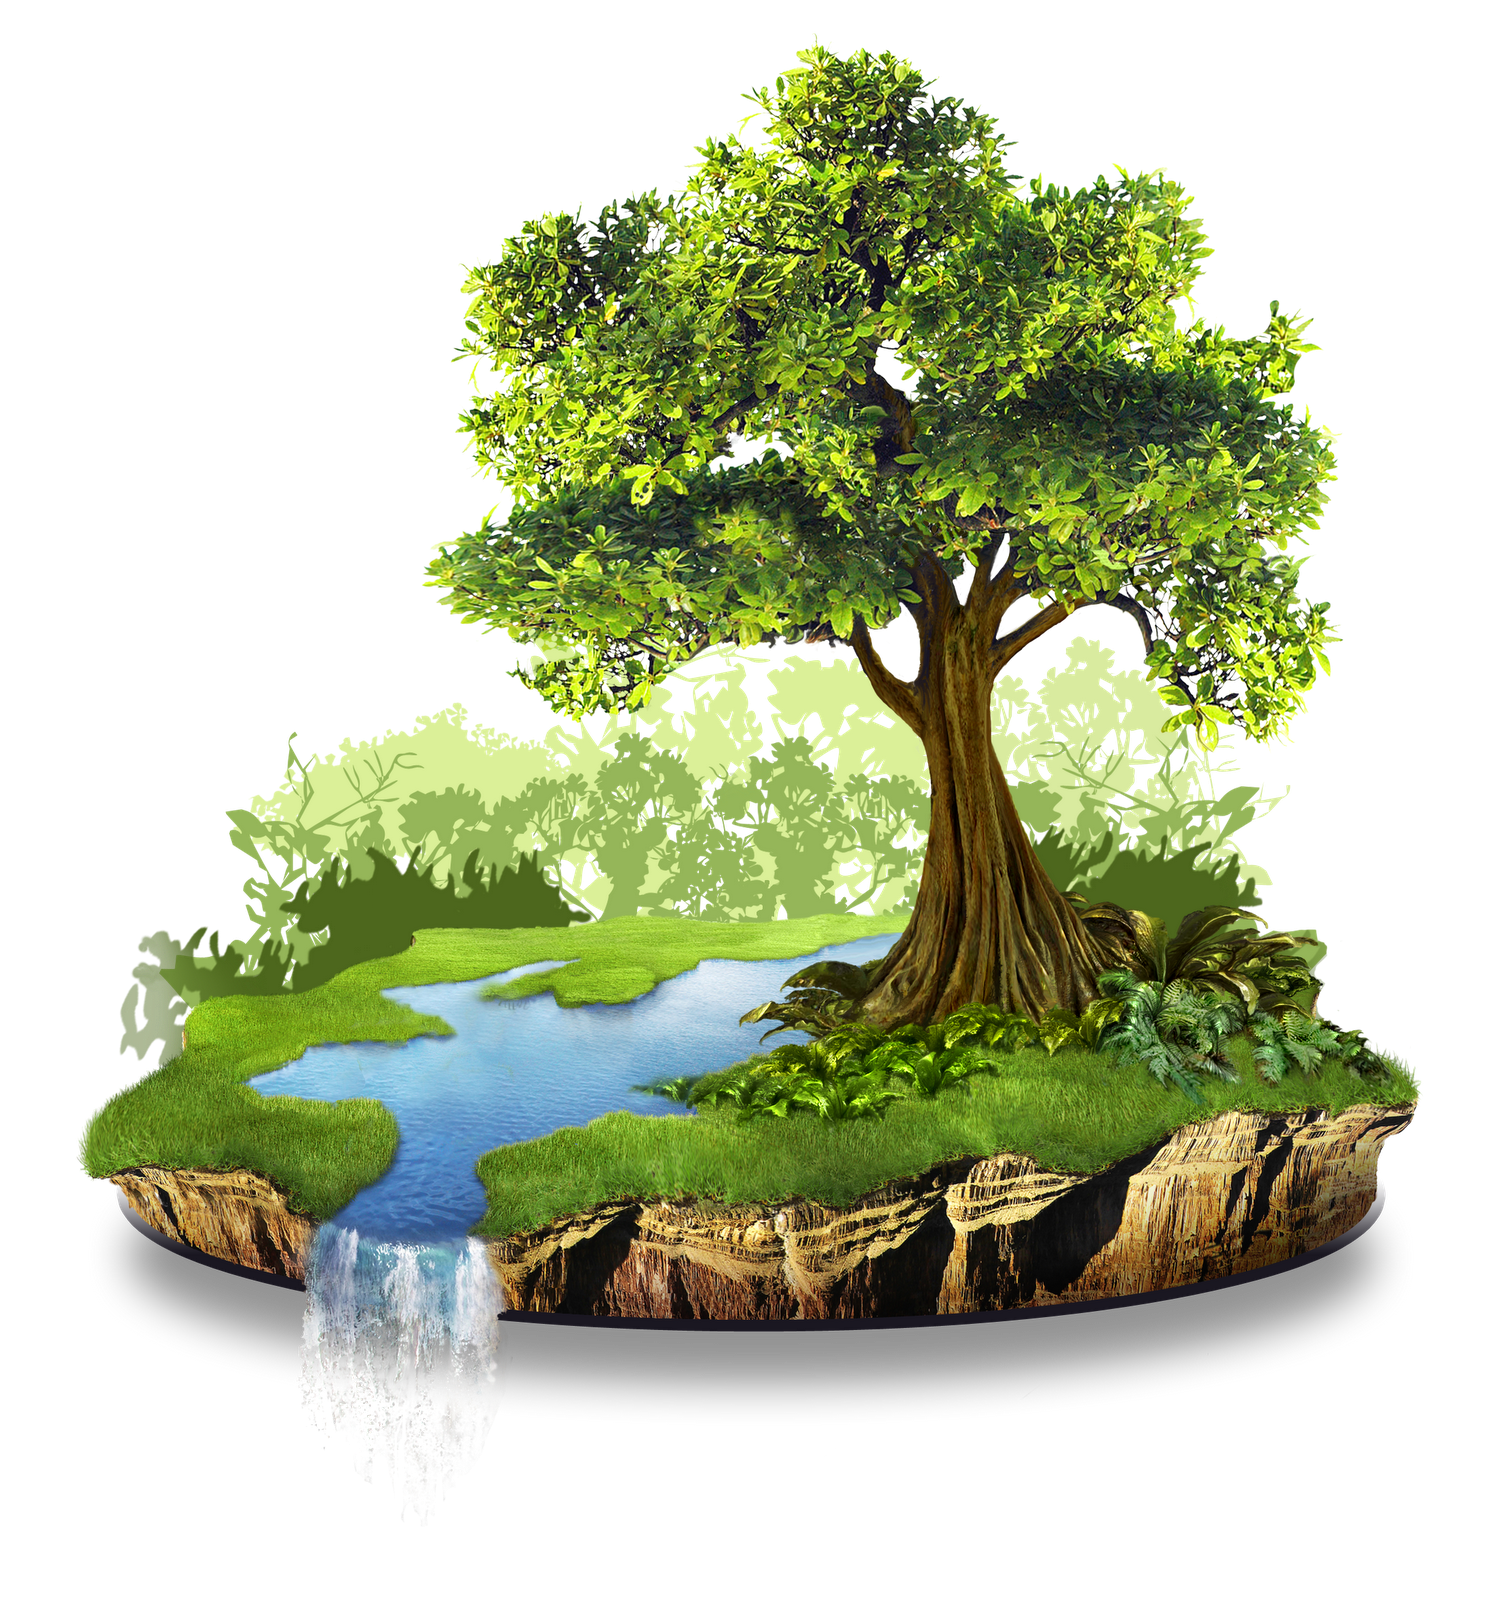 protection of nature essay Free essays on importance of nature protection in malayalam get help with your writing 1 through 30.